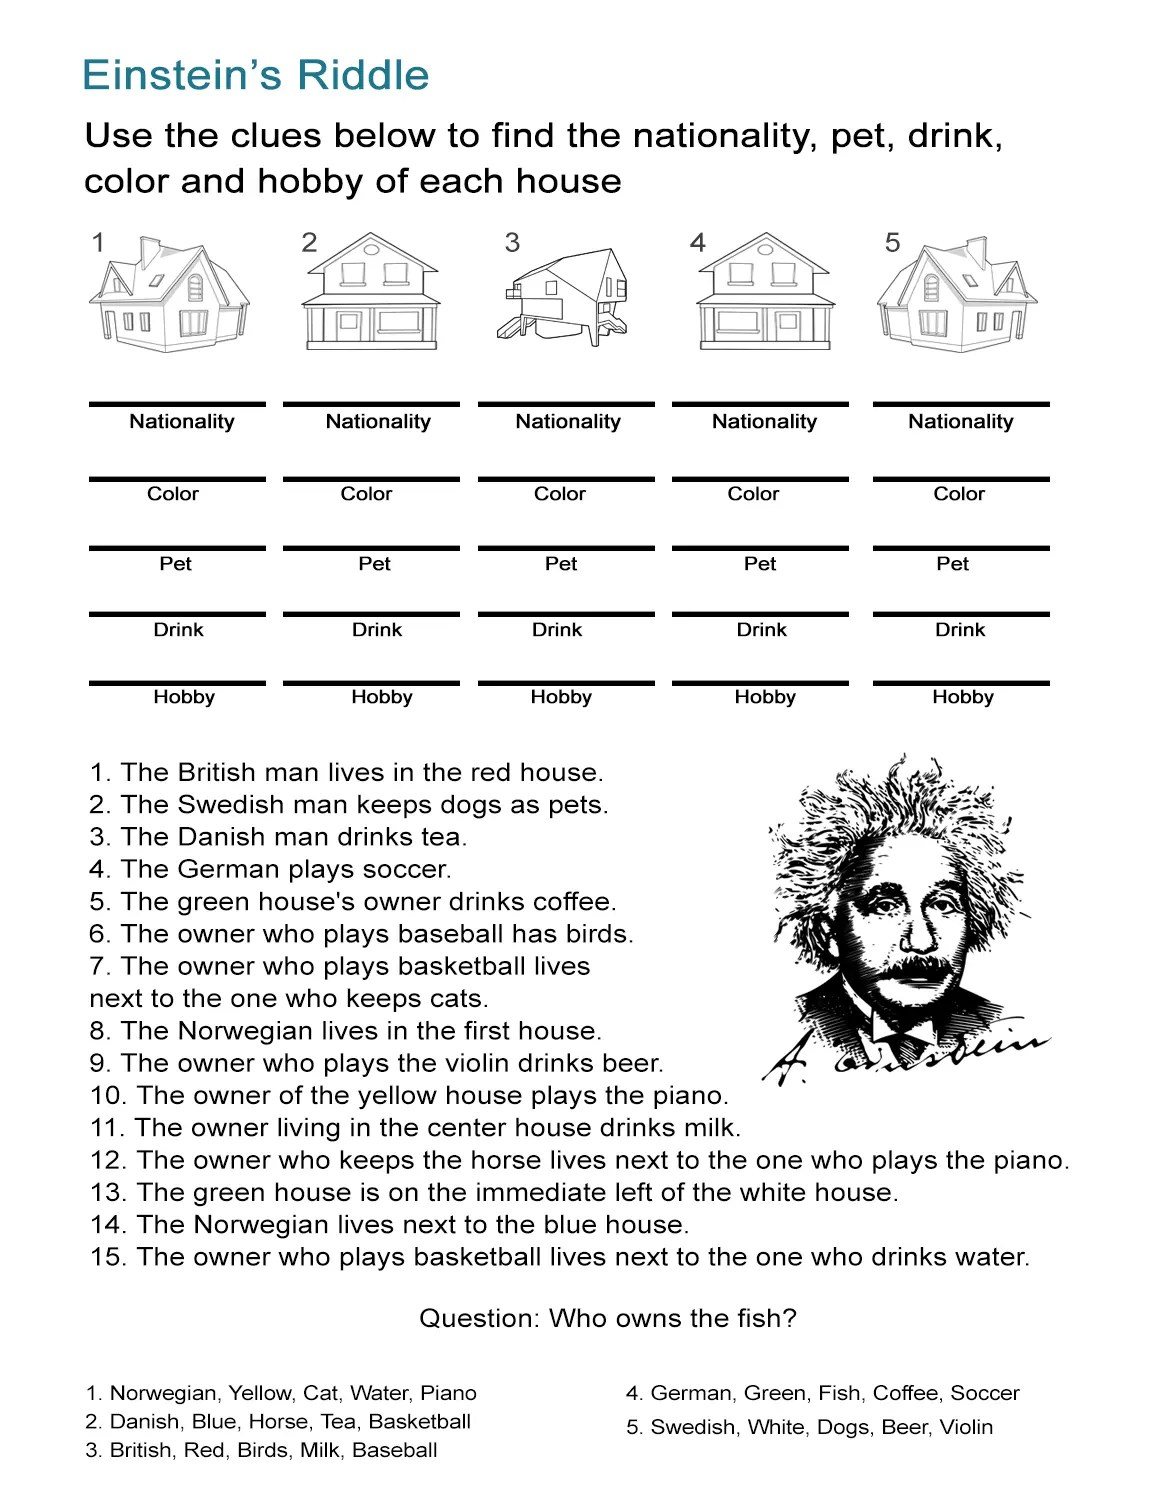 43 Free Esl Worksheets That Enable English Language